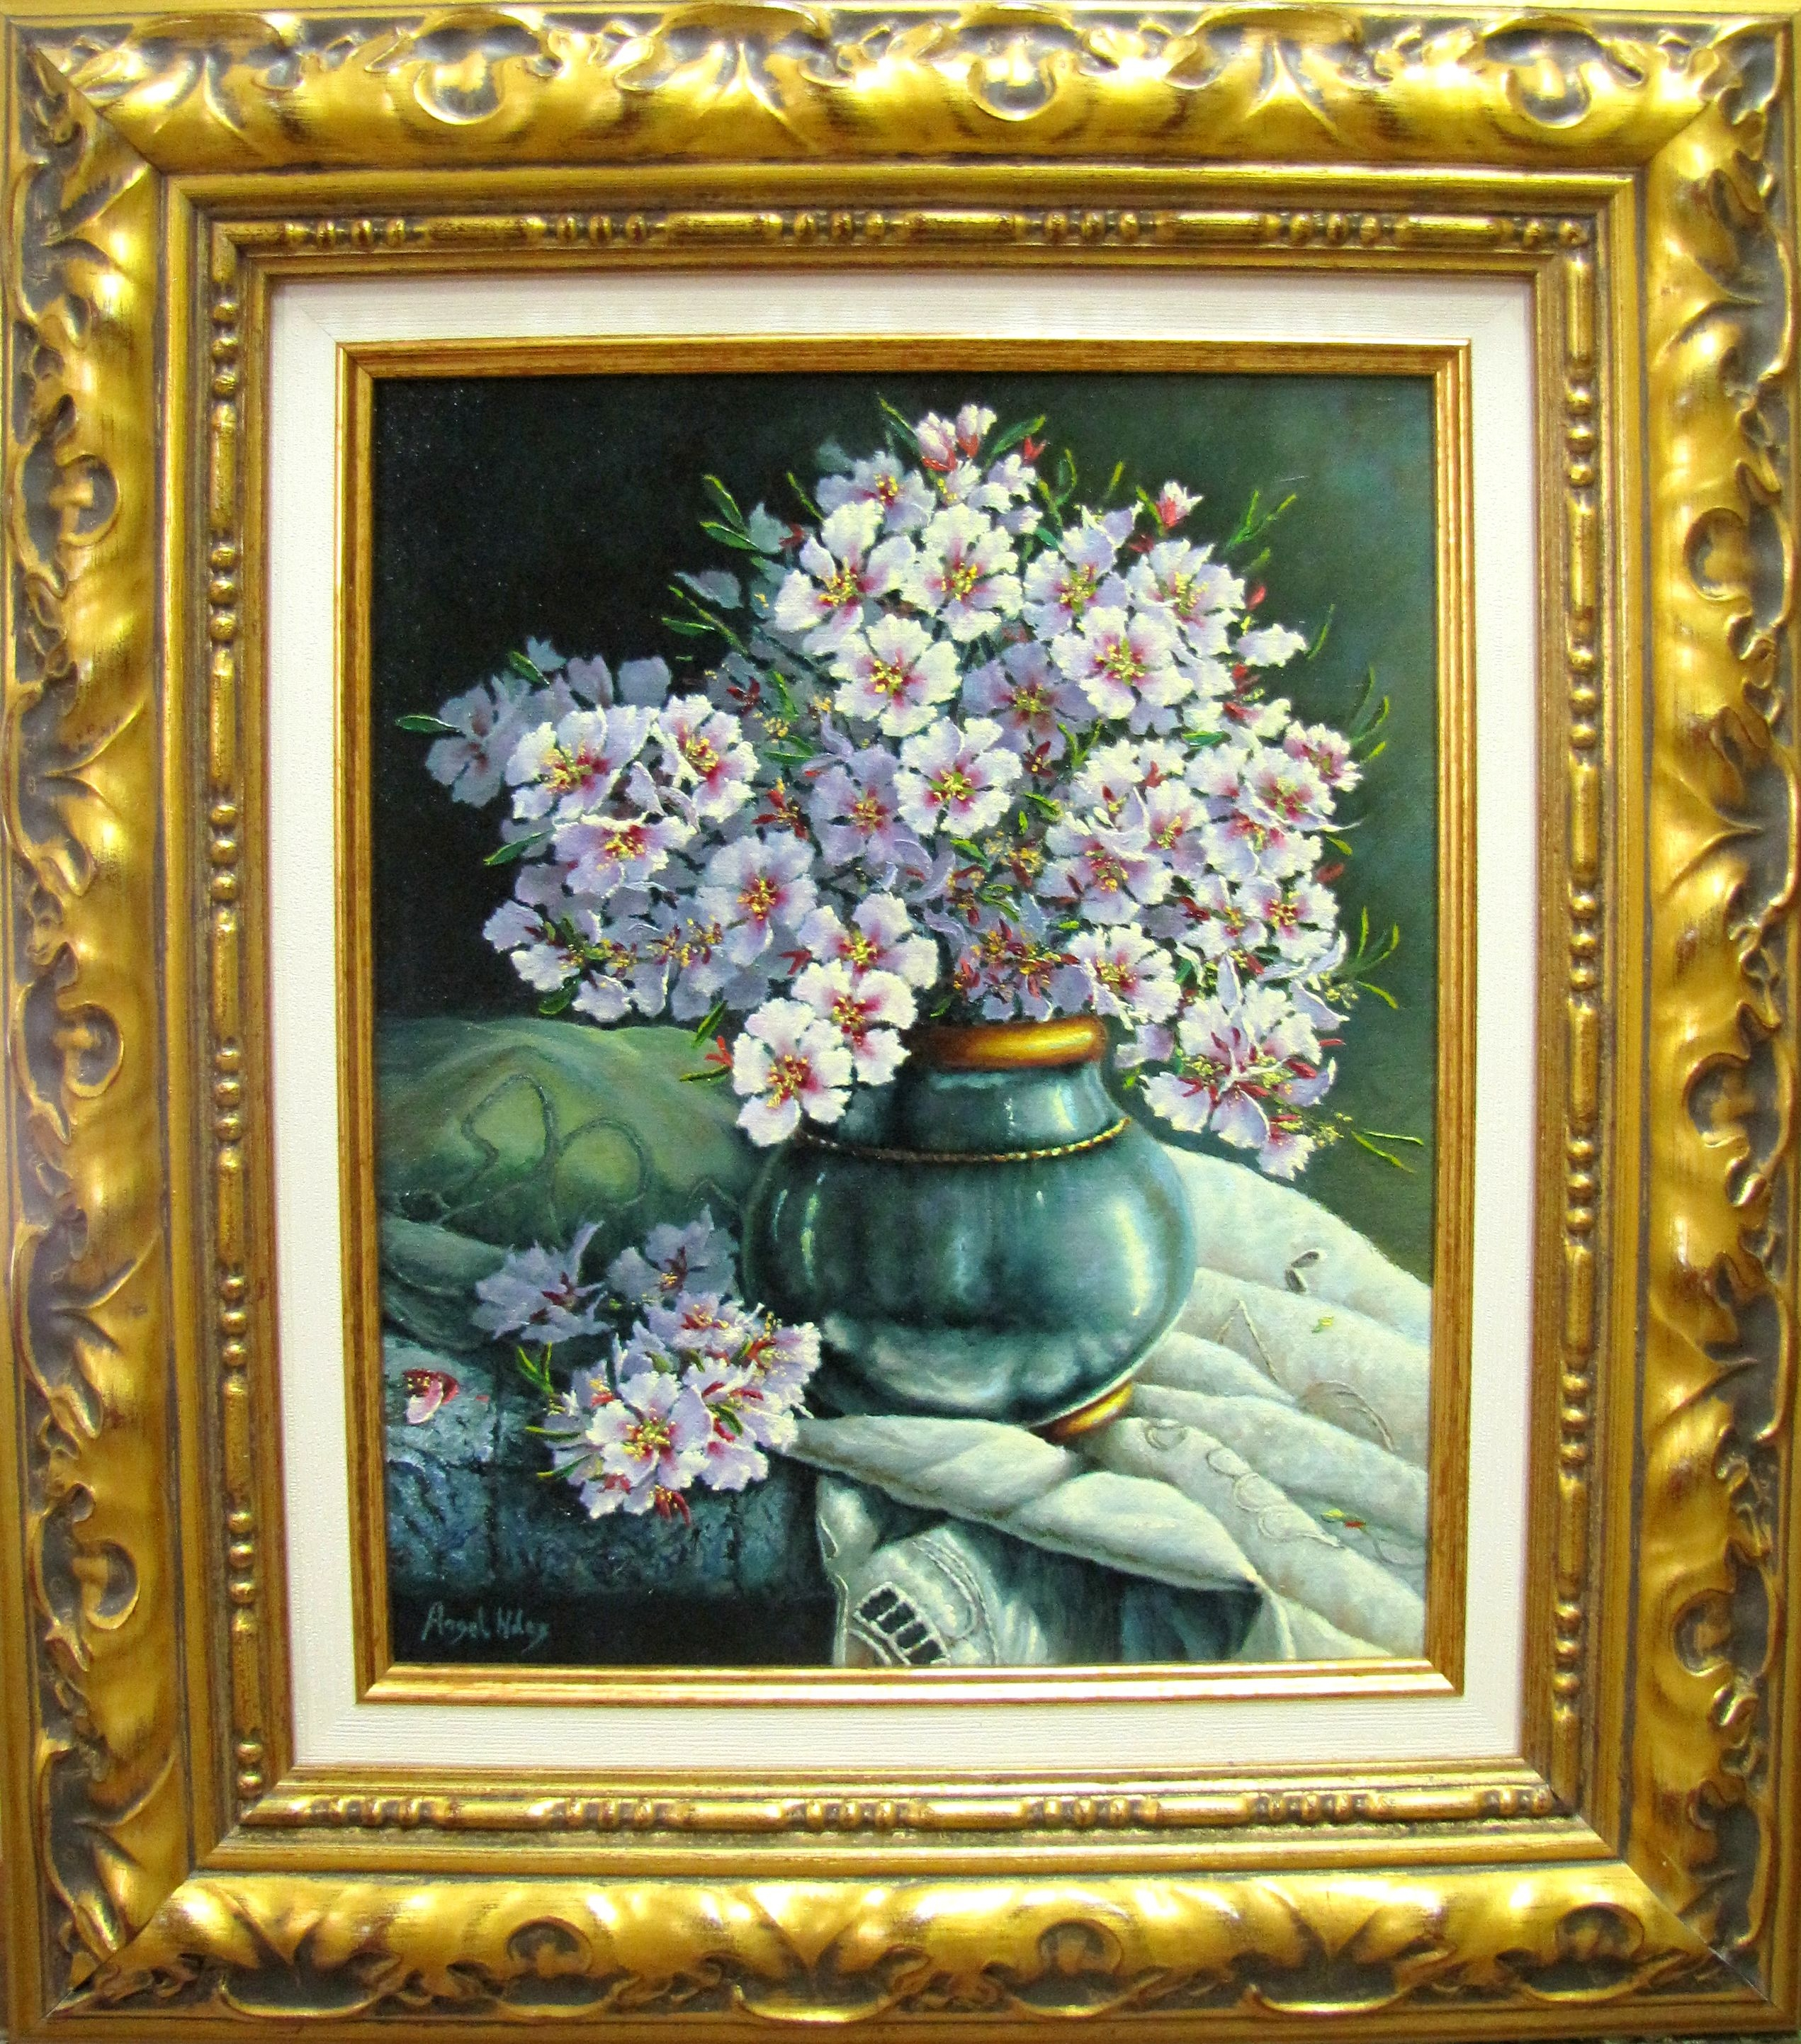 STILL LIFE WITH FLOWERS OF ALMOND